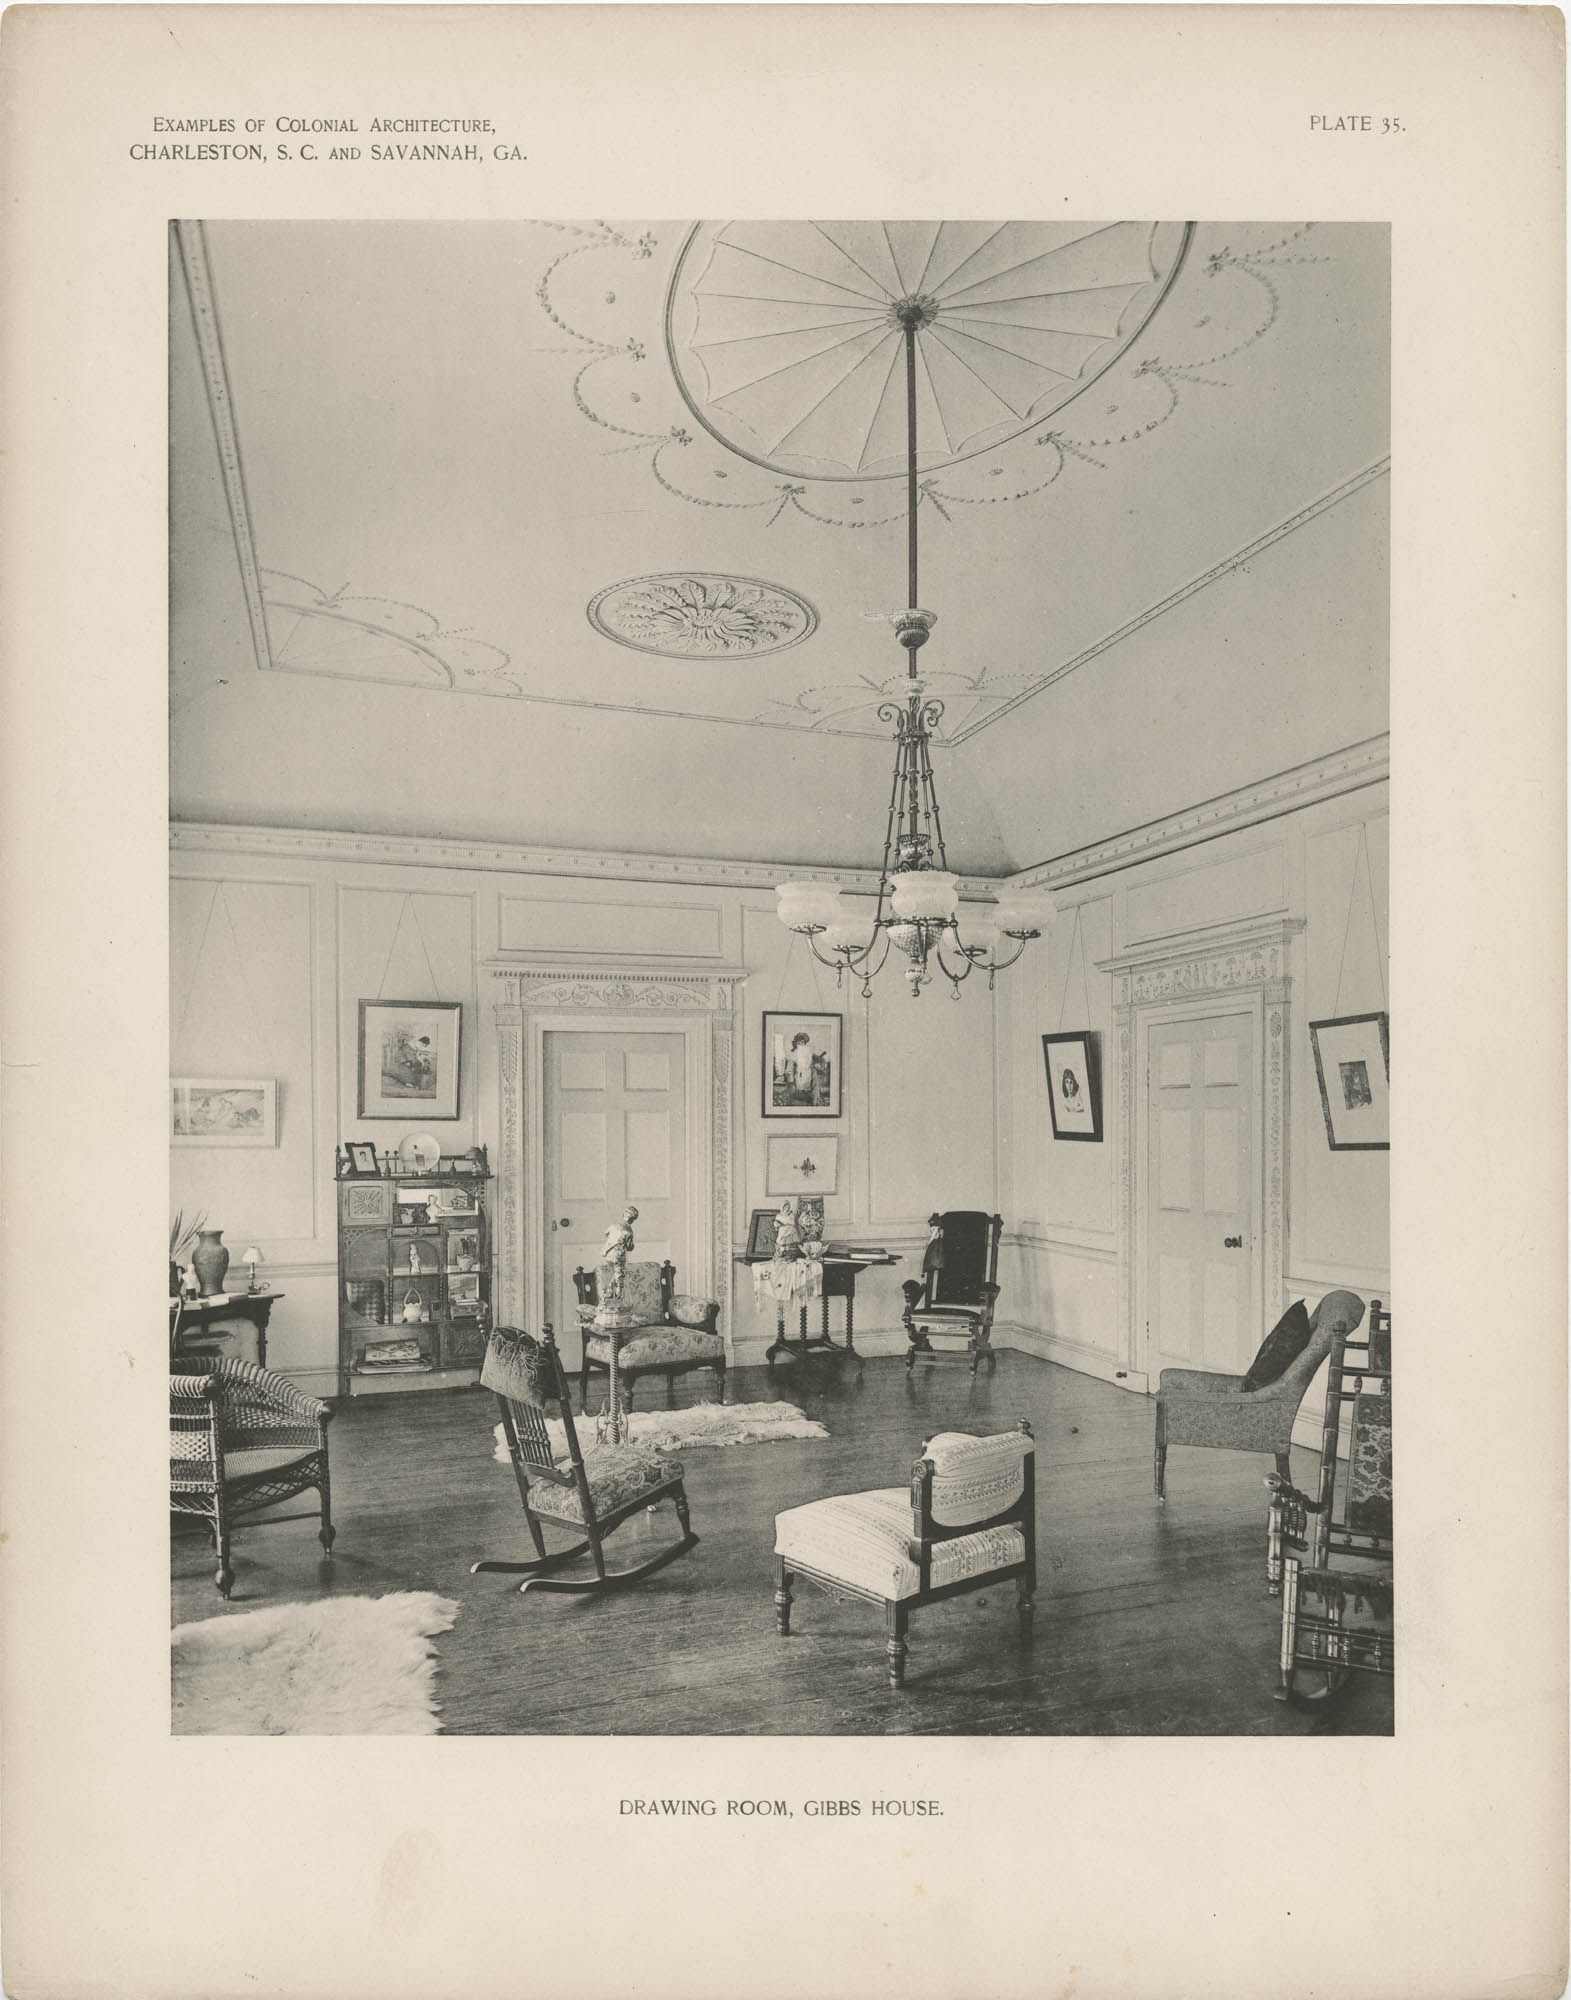 Plate 35: Drawing Room, Gibbs [sic] House